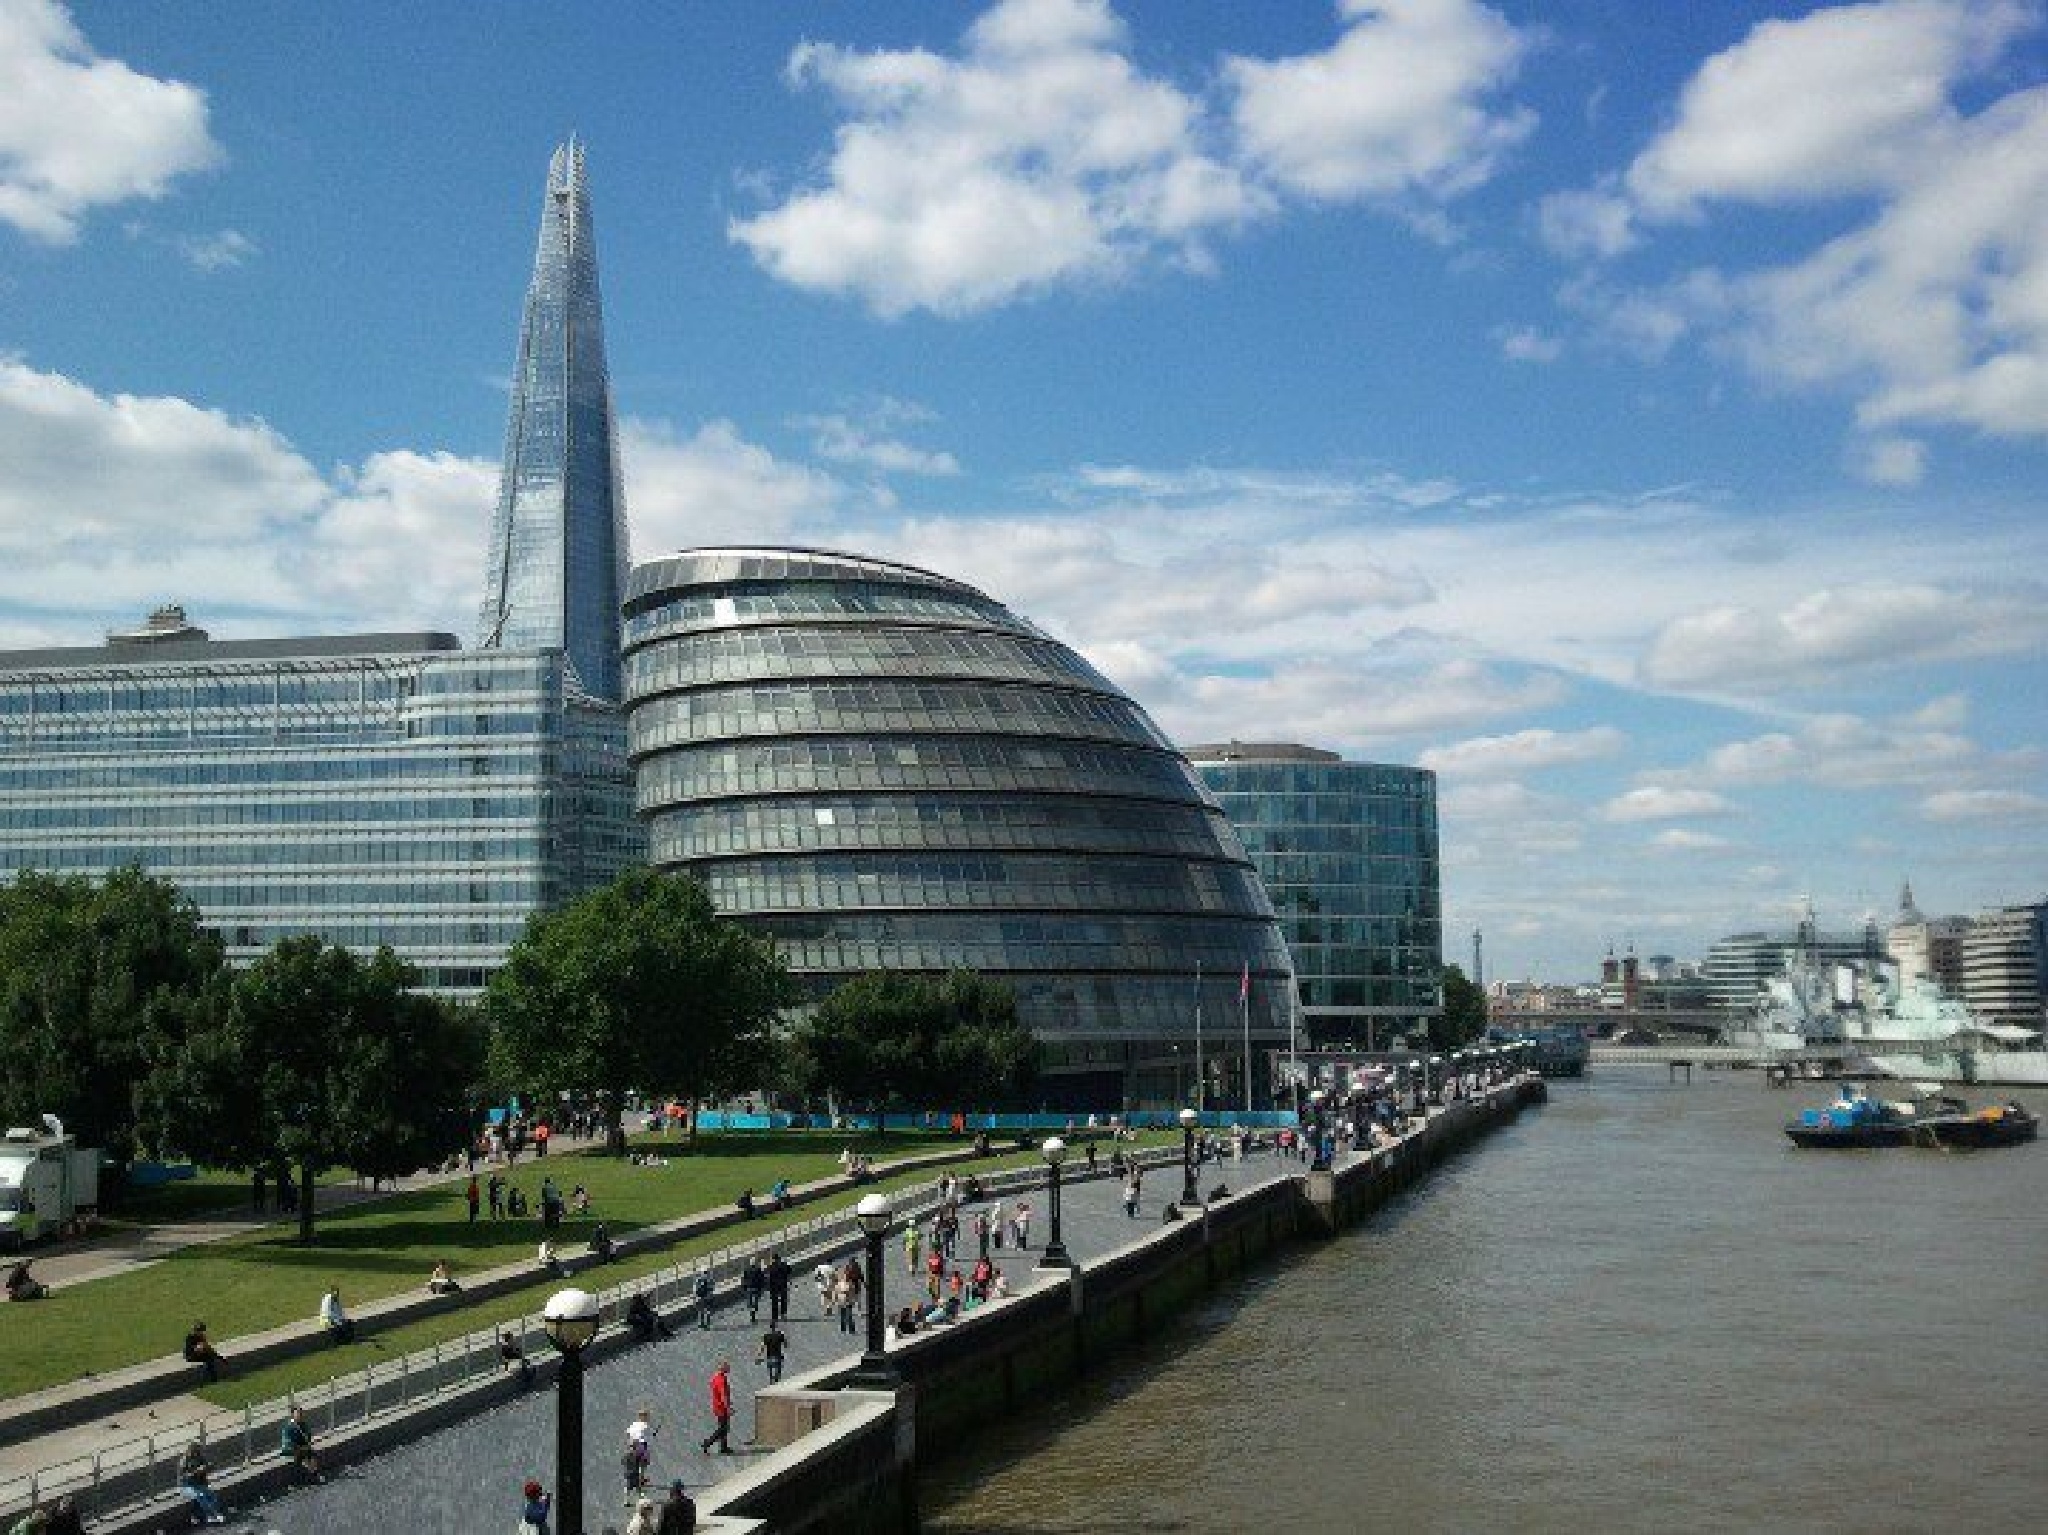 London Shard and Thames by Xanthe Towler